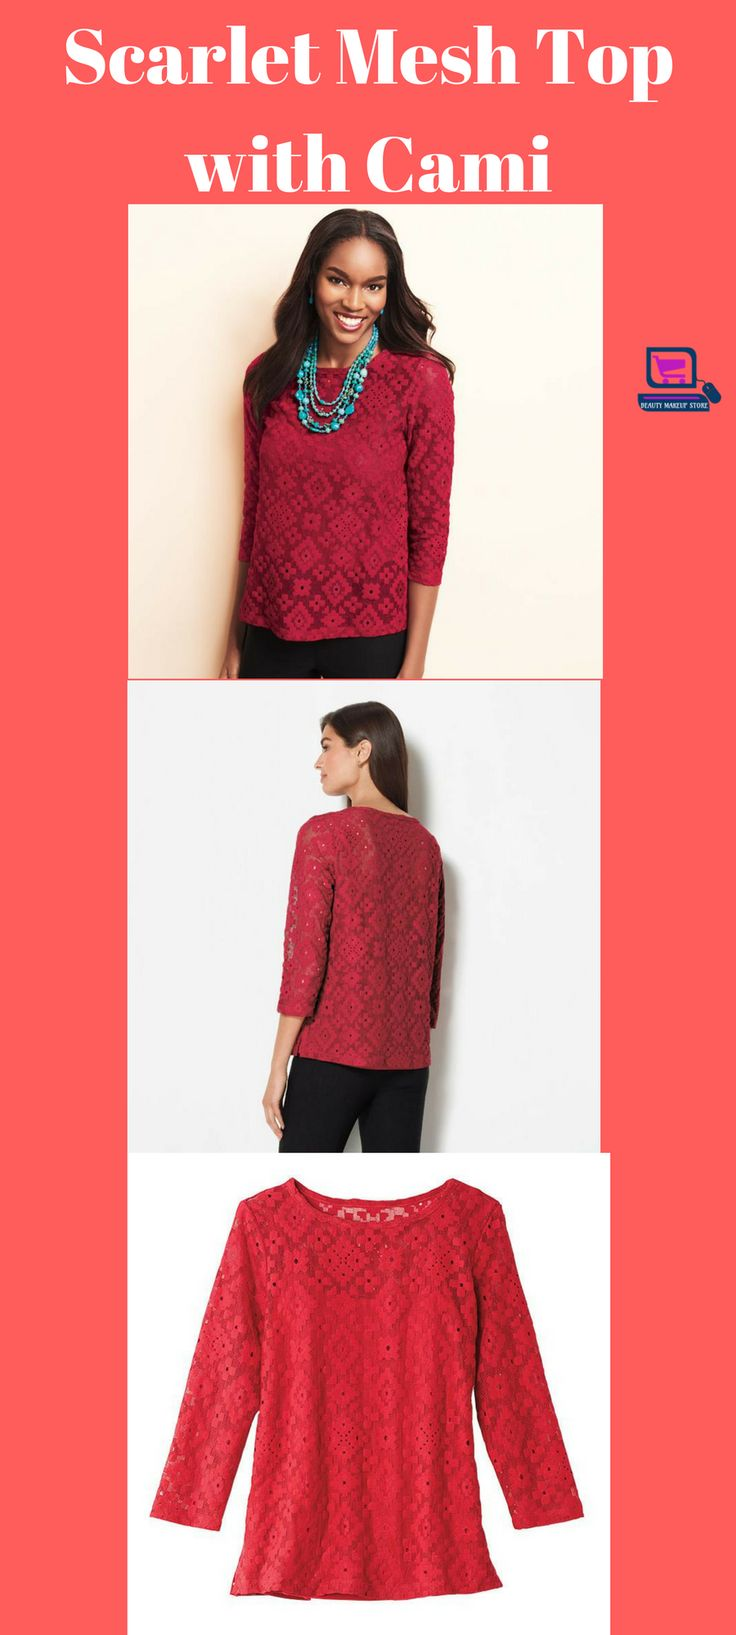 Scarlet Mesh Top with Cami #womentops #womentopcasuals #womenclothing #shopwommenclothing #buywomenclothing #fashion #womenblouses  women topples | women tops | women top hat | women tops casual | women top knot | Top Women Top Jobs | Women Tops / Blouses | women tops | Women Tops And Blouses |